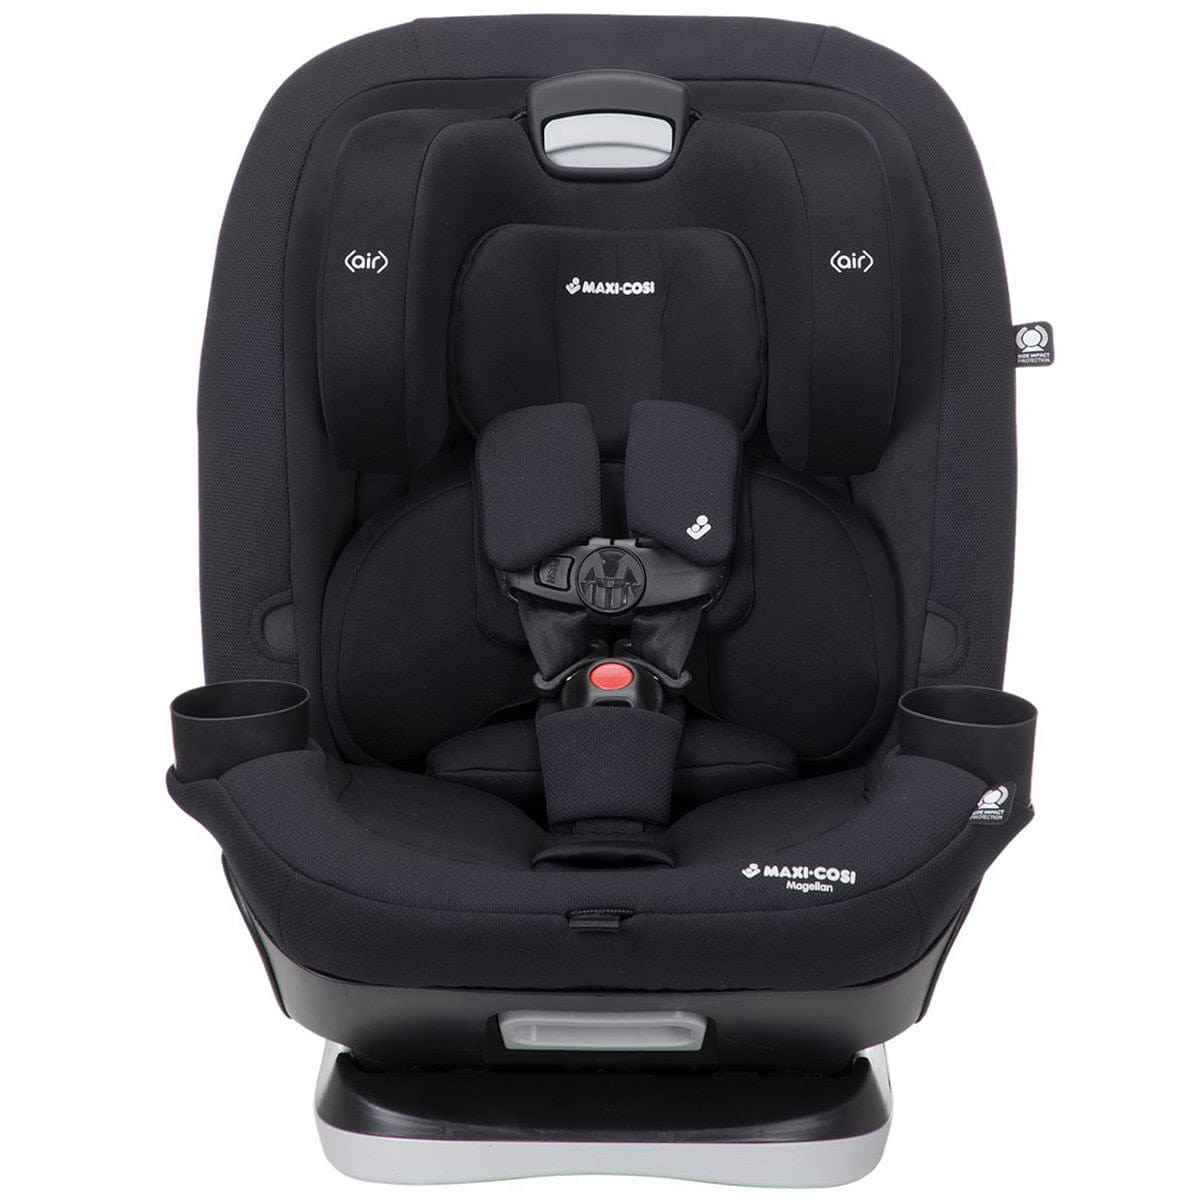 Maxi-Cosi Magellan 5-in-1 Car Seat - Night Black